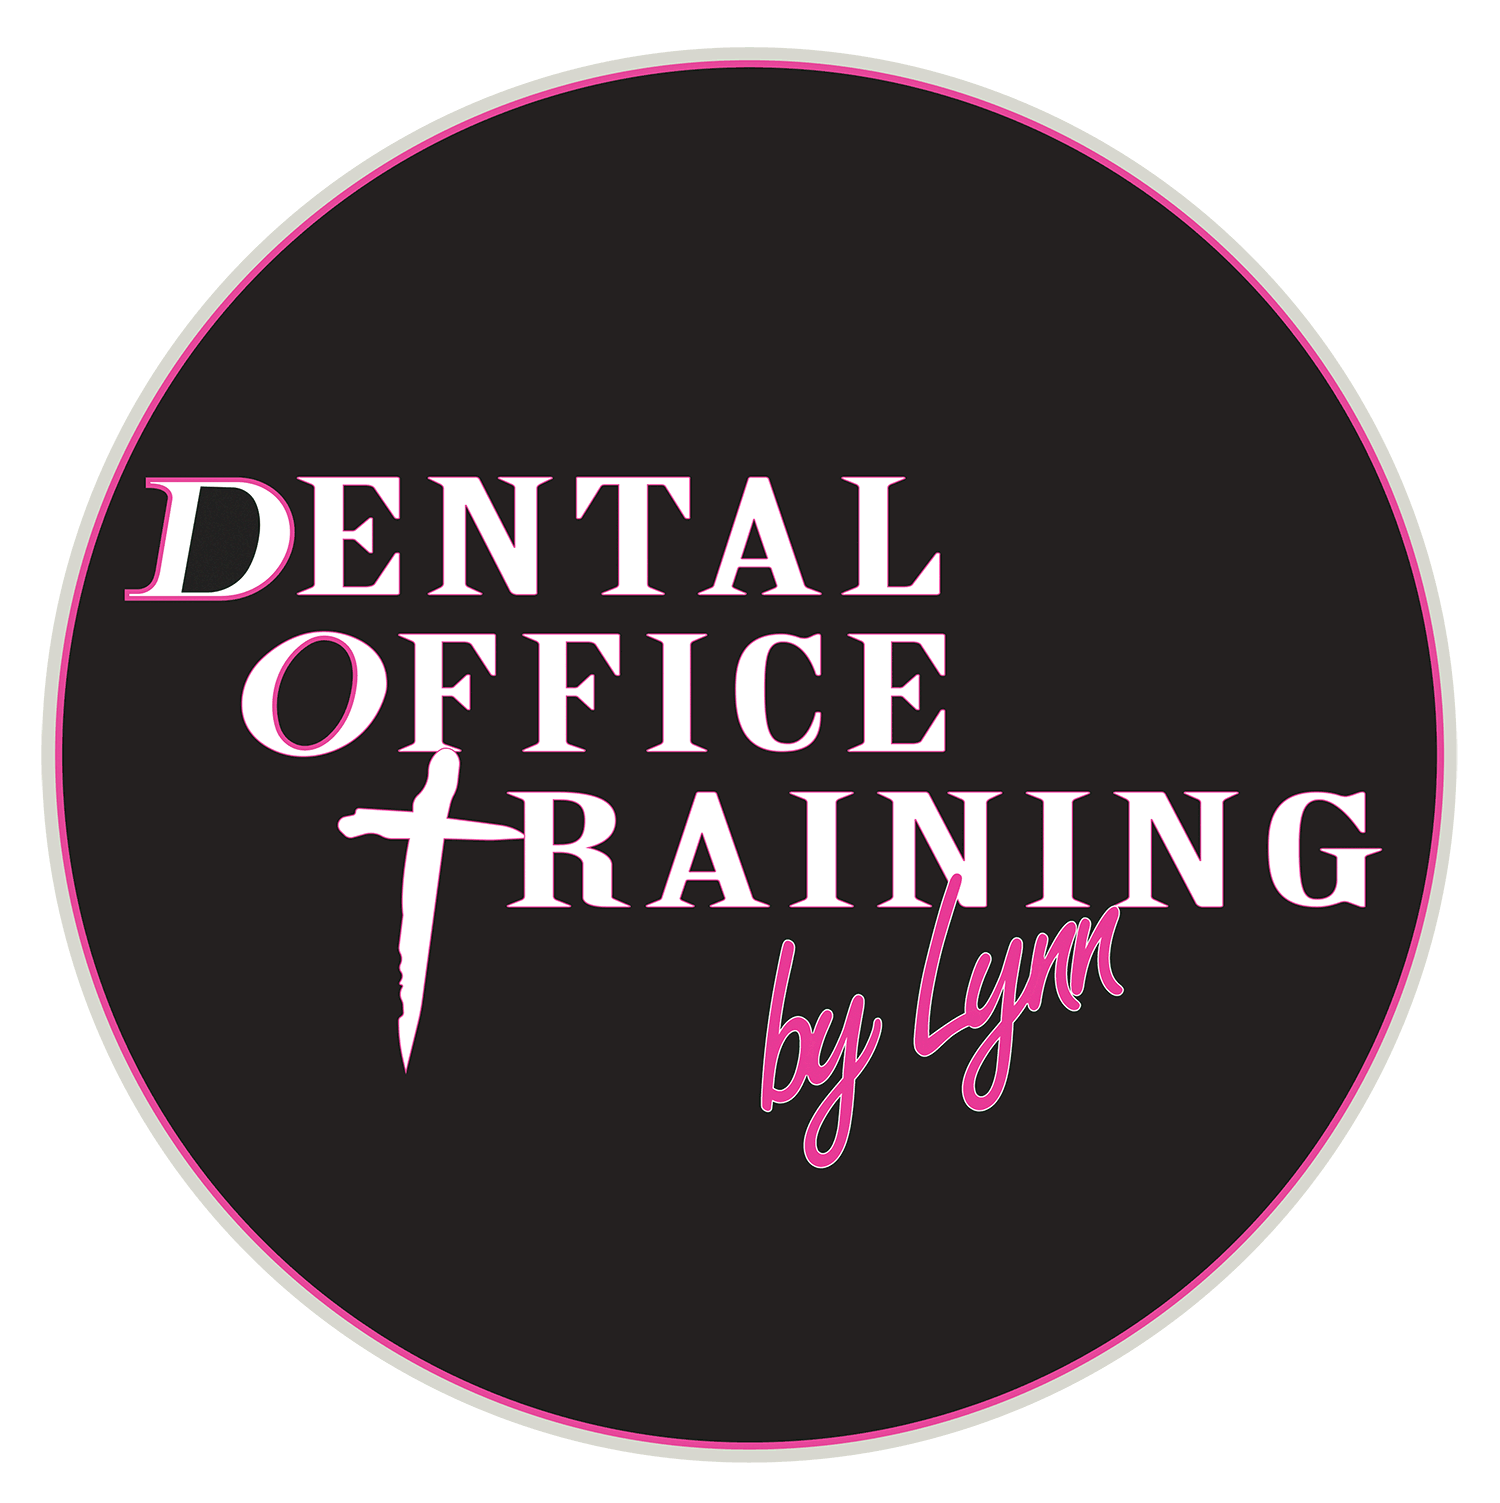 Dental Office Training By Lynn